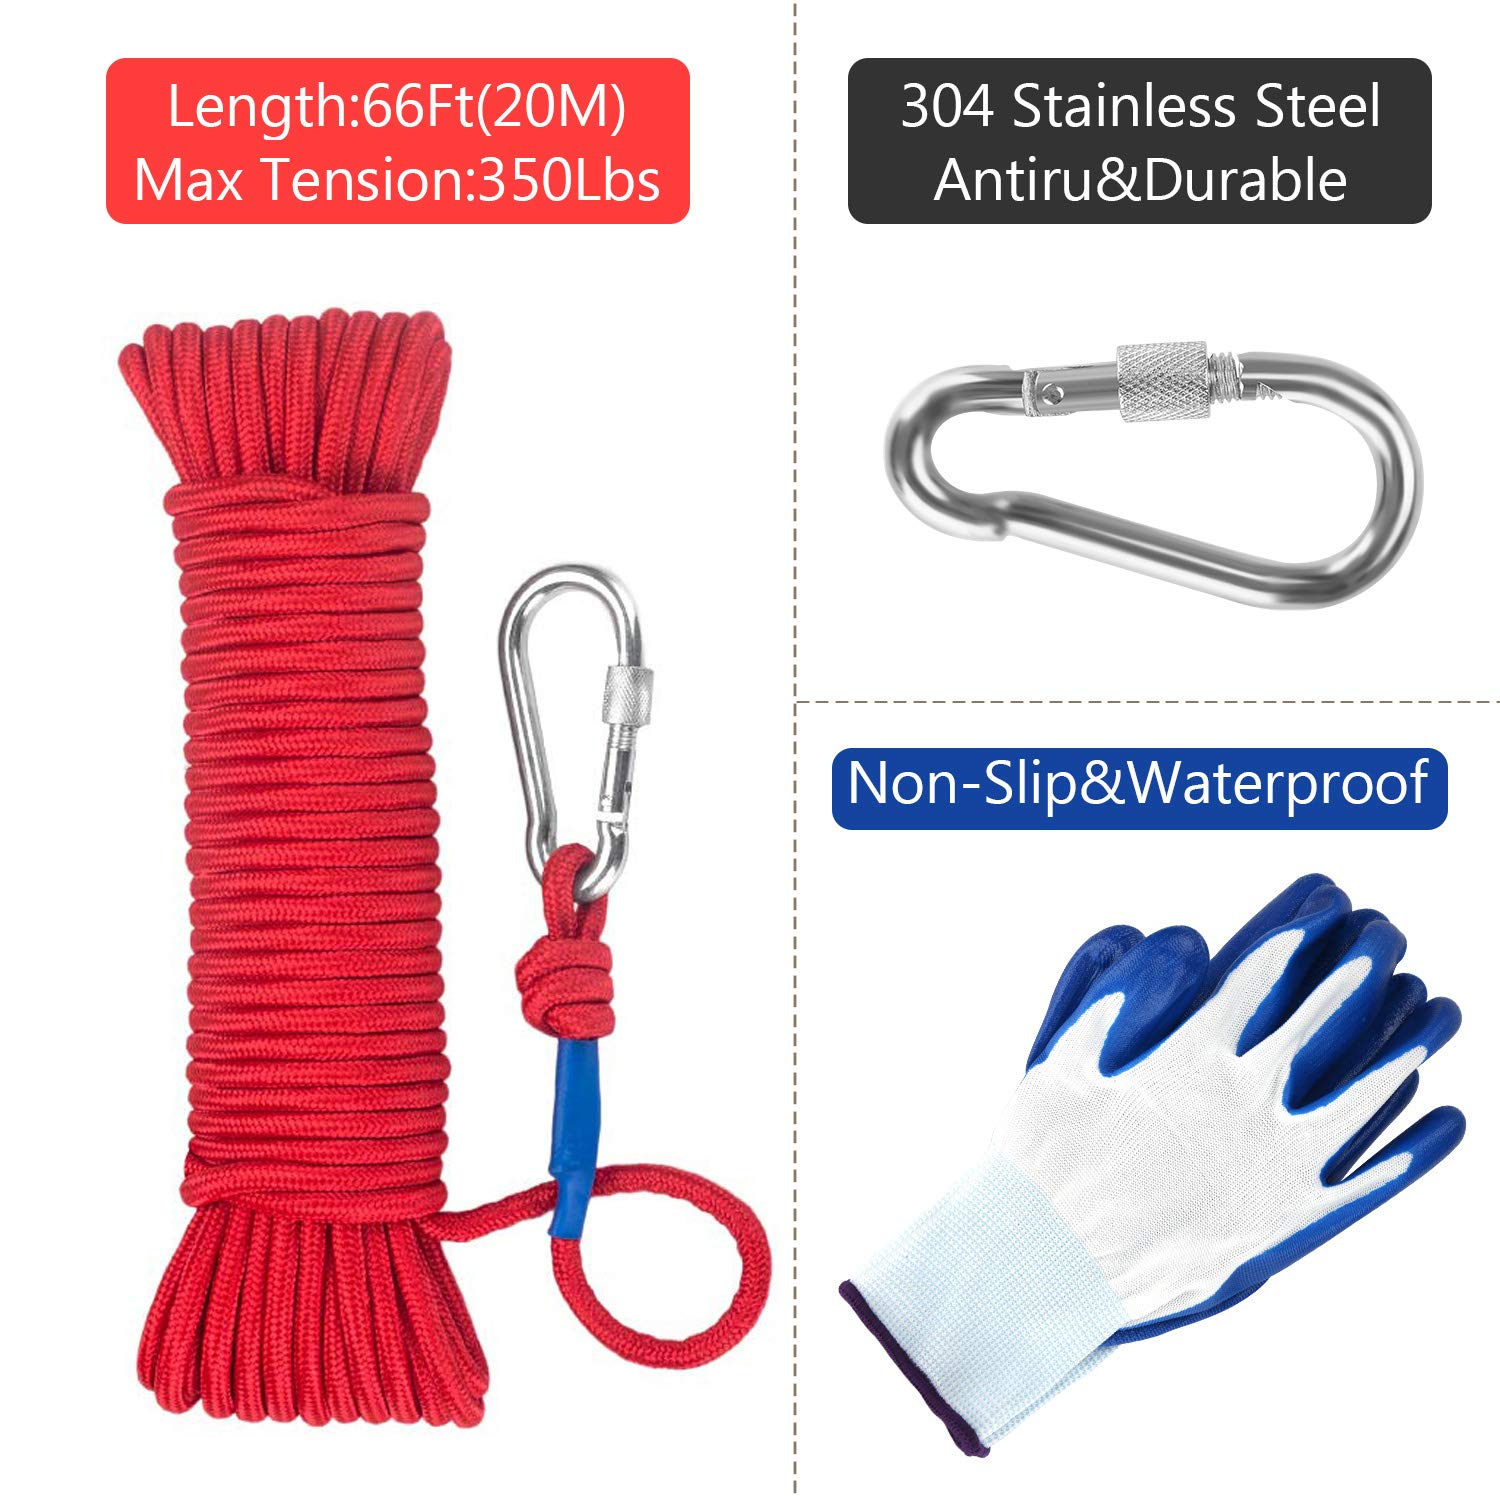 Fishing Magnet with 66ft Rope & Glove, Wukong 760LB Pulling Force Super Strong Neodymium Magnet with Heavy Duty Rope & Carabiner for Magnet Fishing and Retrieving in River - 67mm Diameter by Wukong (Image #7)